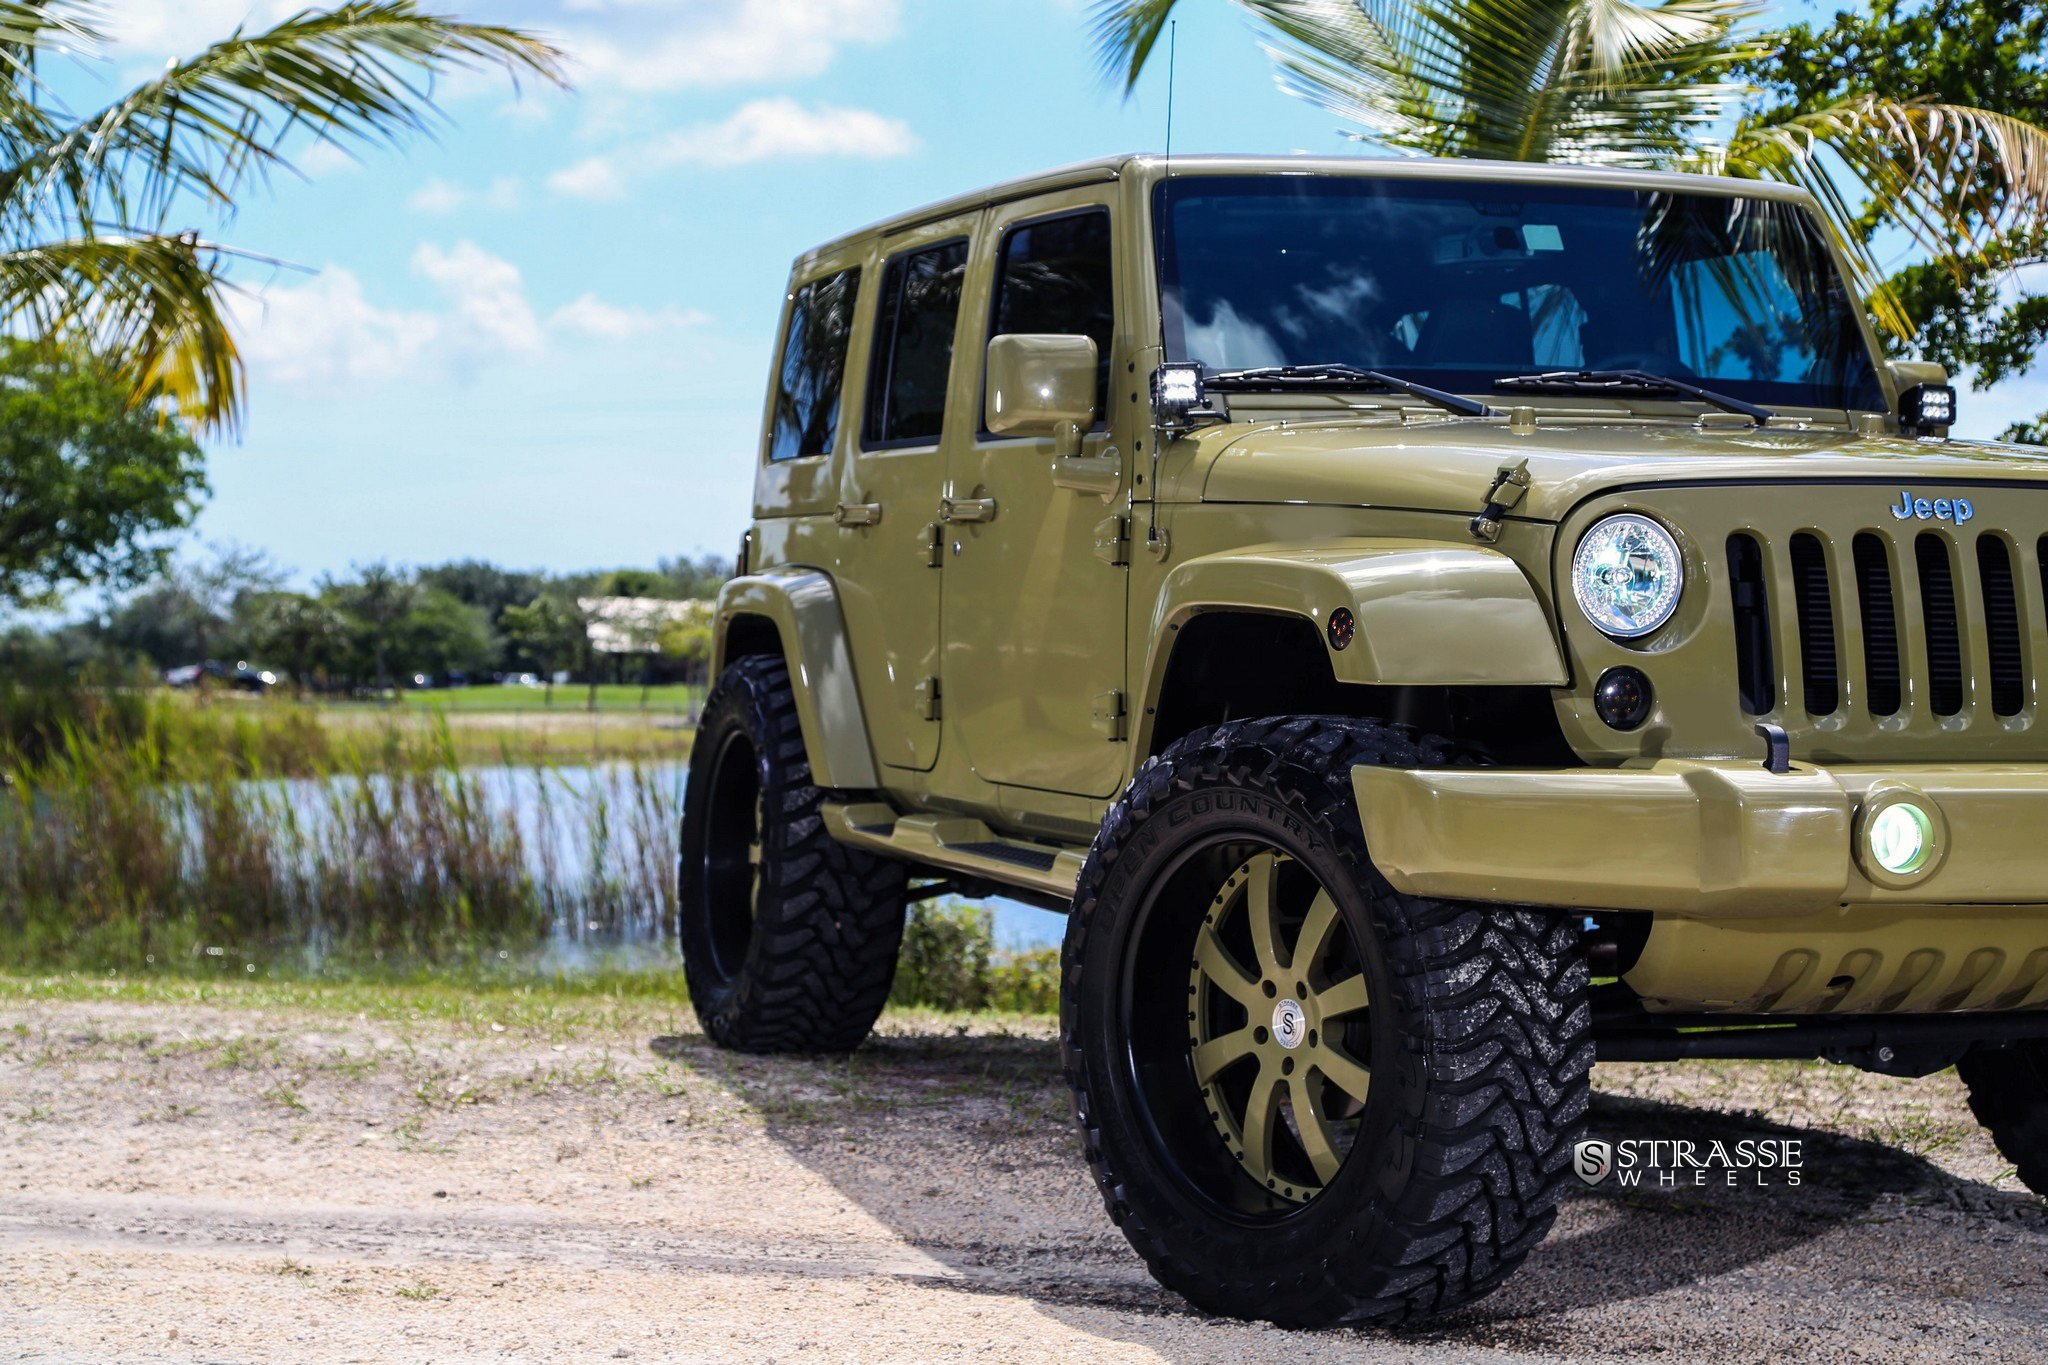 Khaki Jeep Wrangler with Custom Painted Strasse Rims - Photo by Strasse Forged